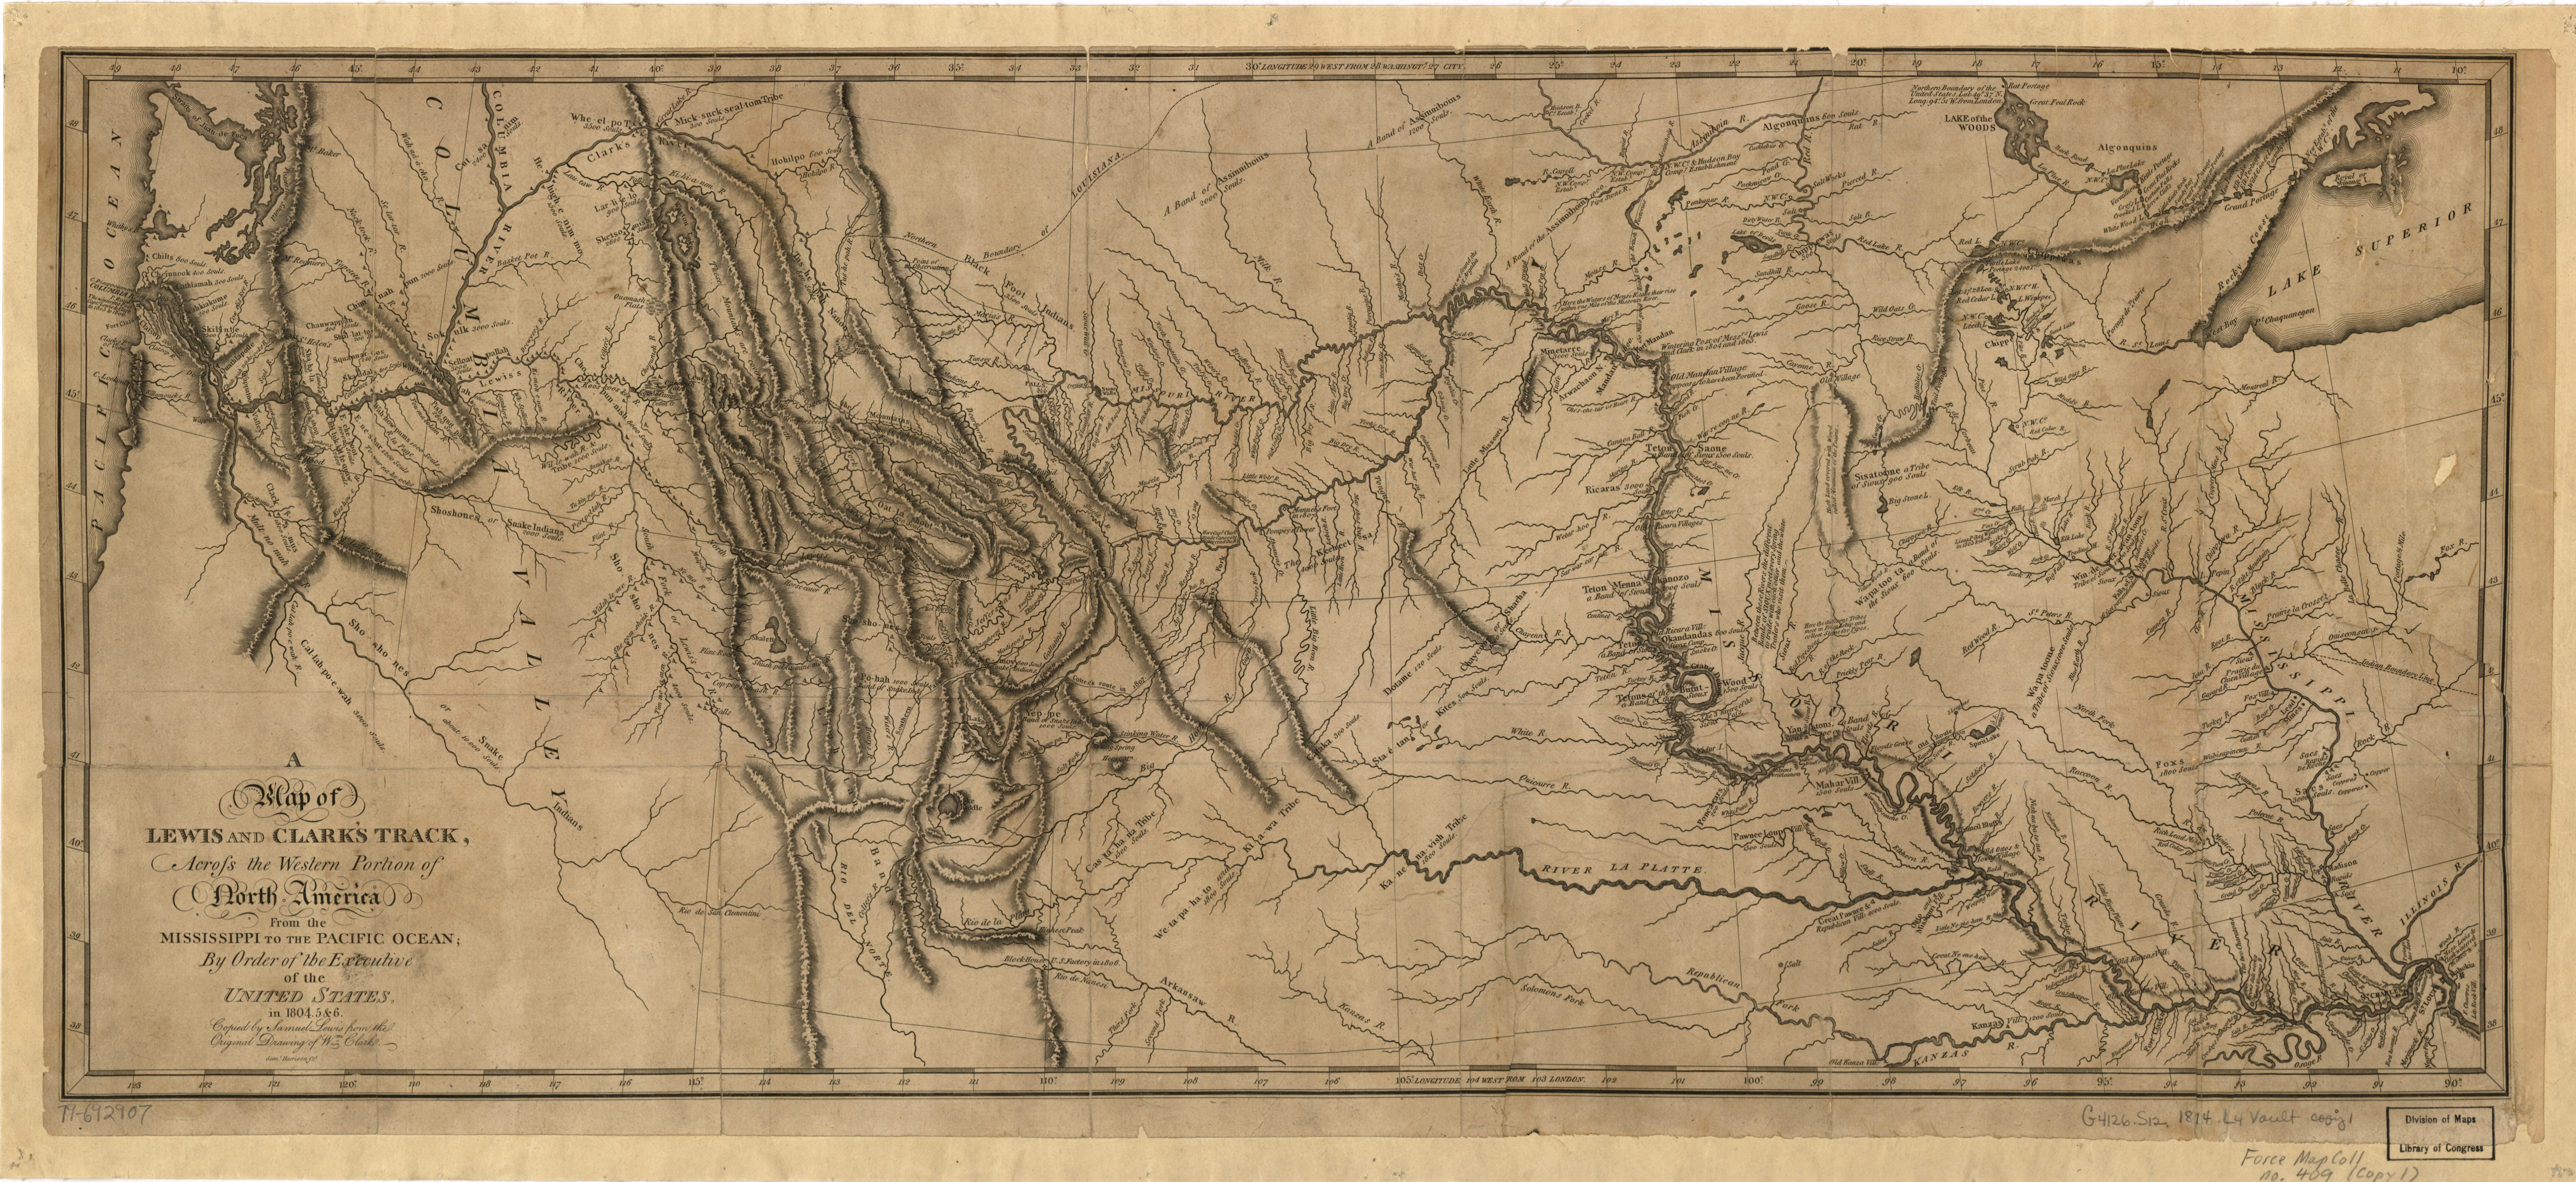 FileLewis And Clark Track Map Published LoCjpg Wikimedia - Us map 1814